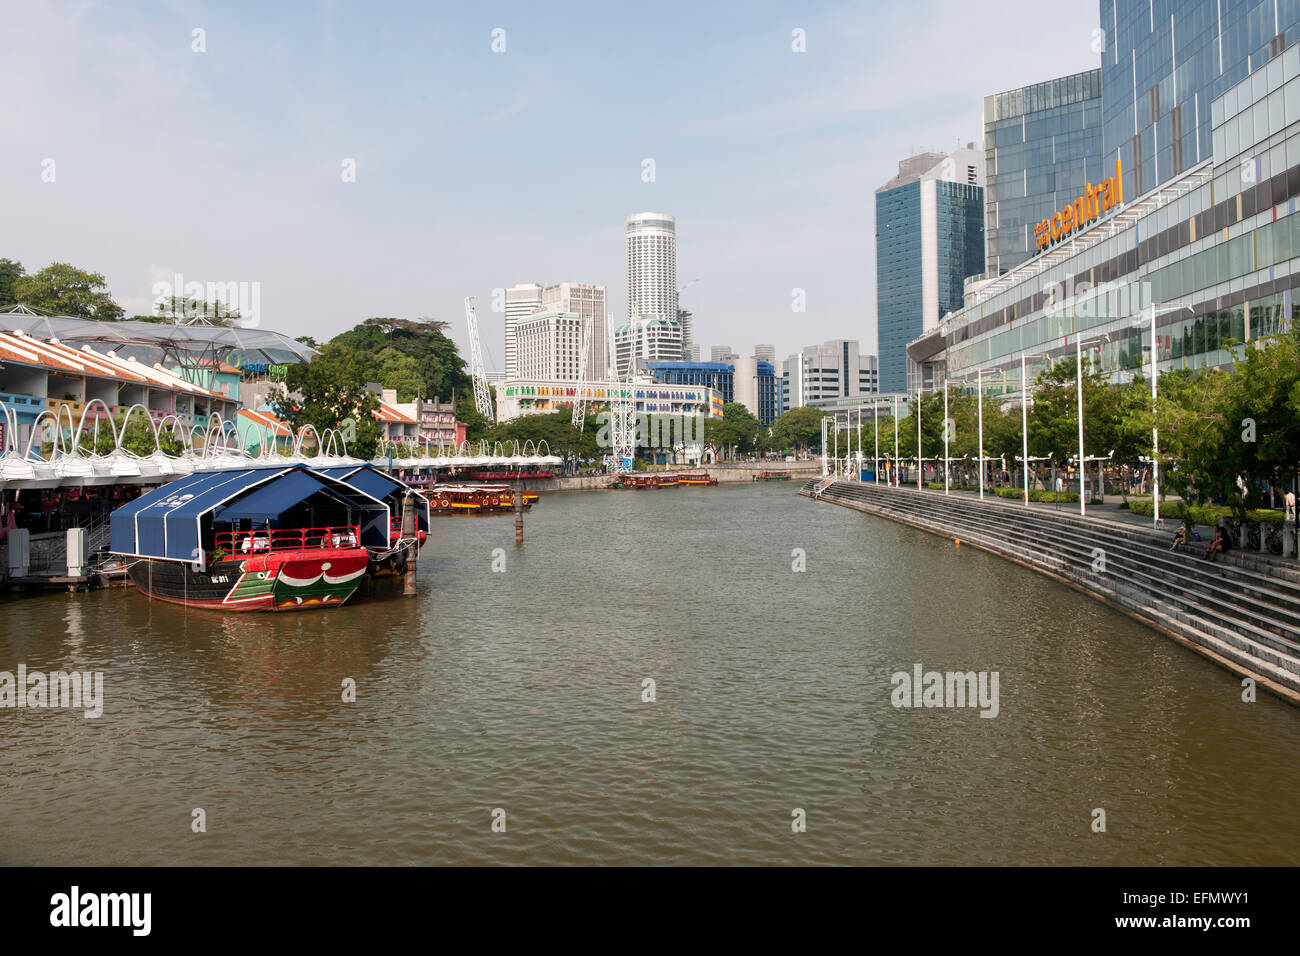 Boats on the Singapore river at Clarke Quay in Singapore. - Stock Image